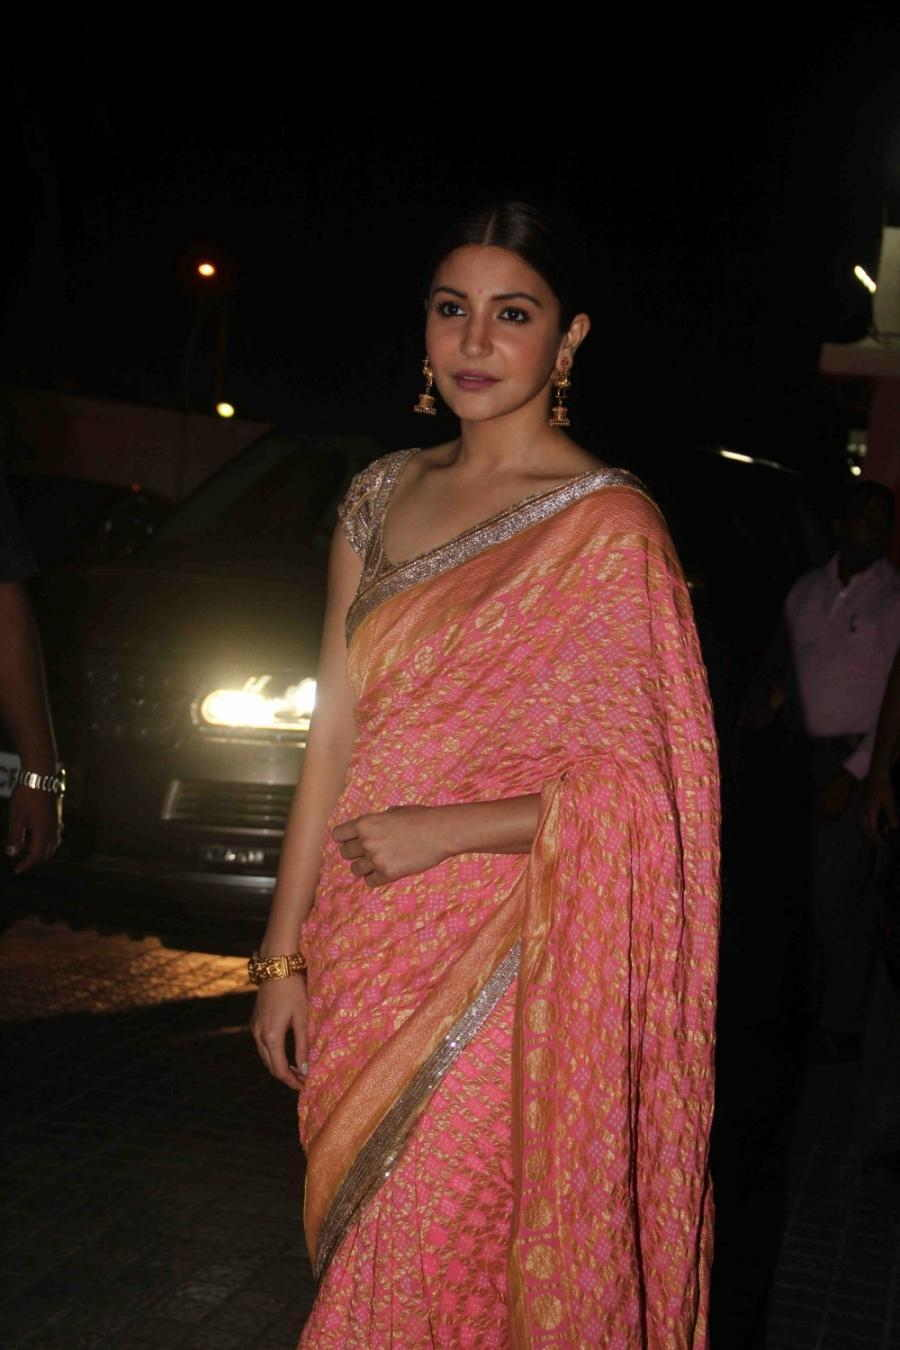 Beautiful Hindi Girl Anushka Sharma Photos In Transparent Pink Sari